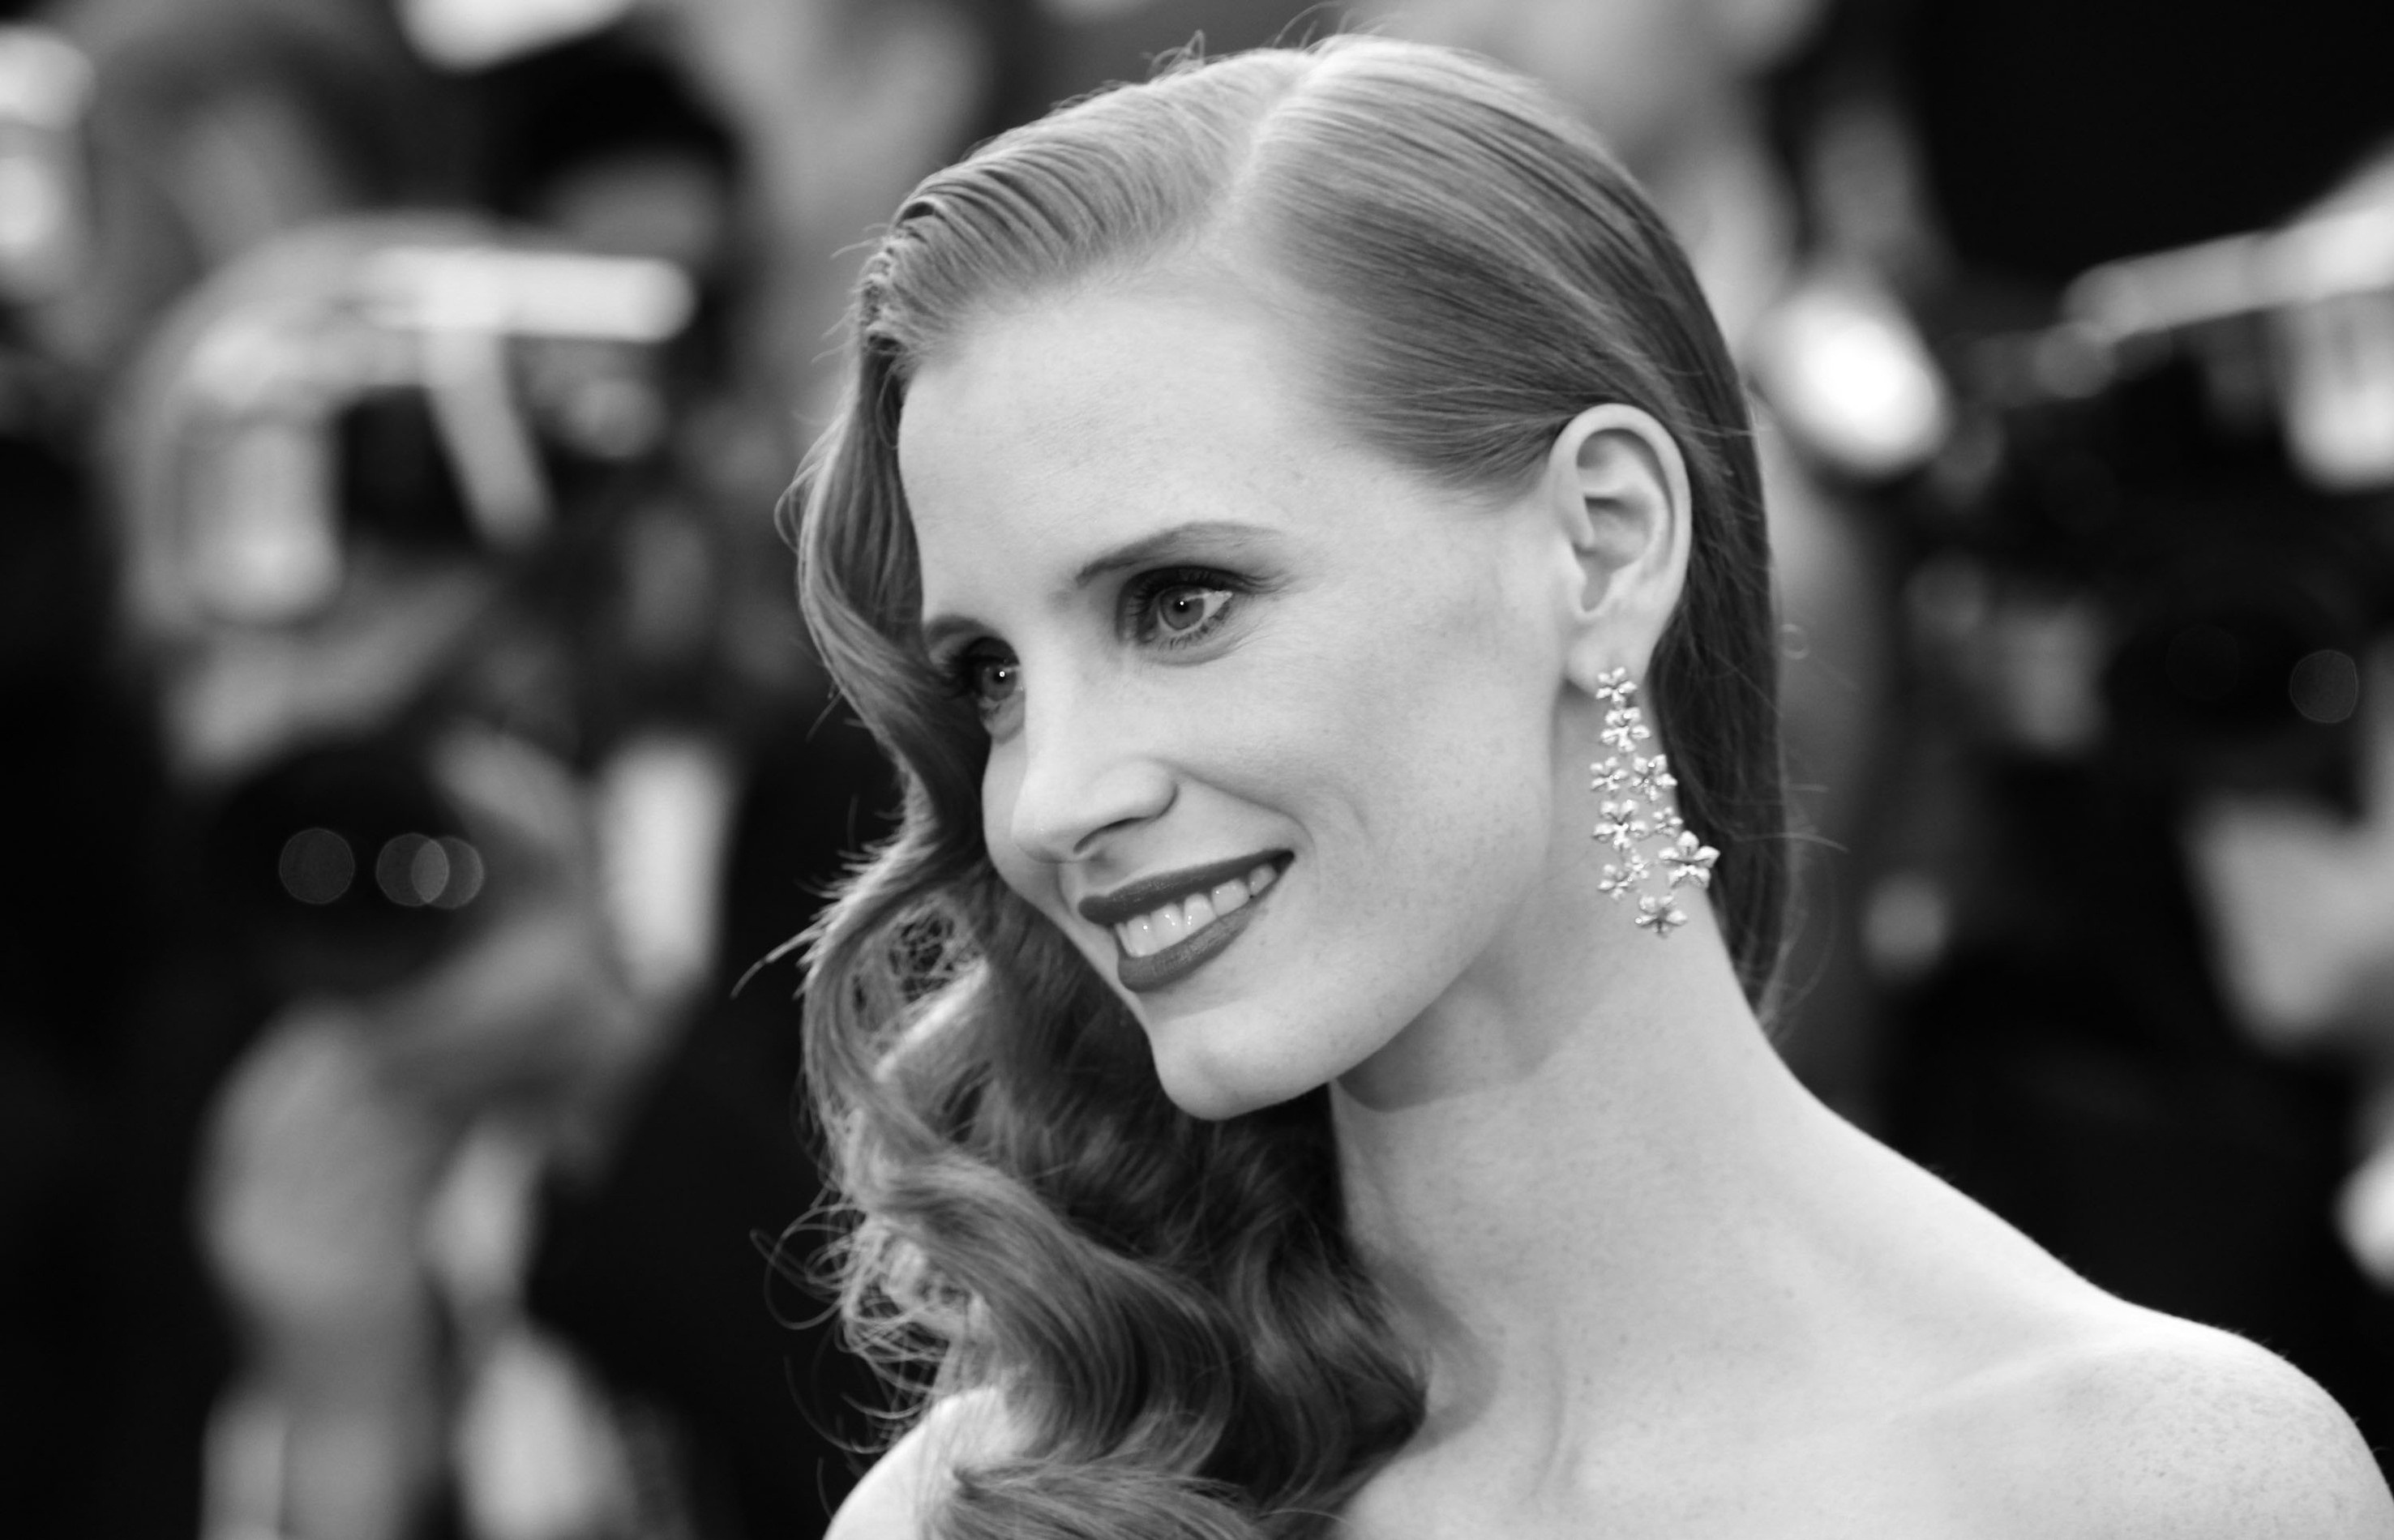 2953x1900 - Jessica Chastain Wallpapers 4